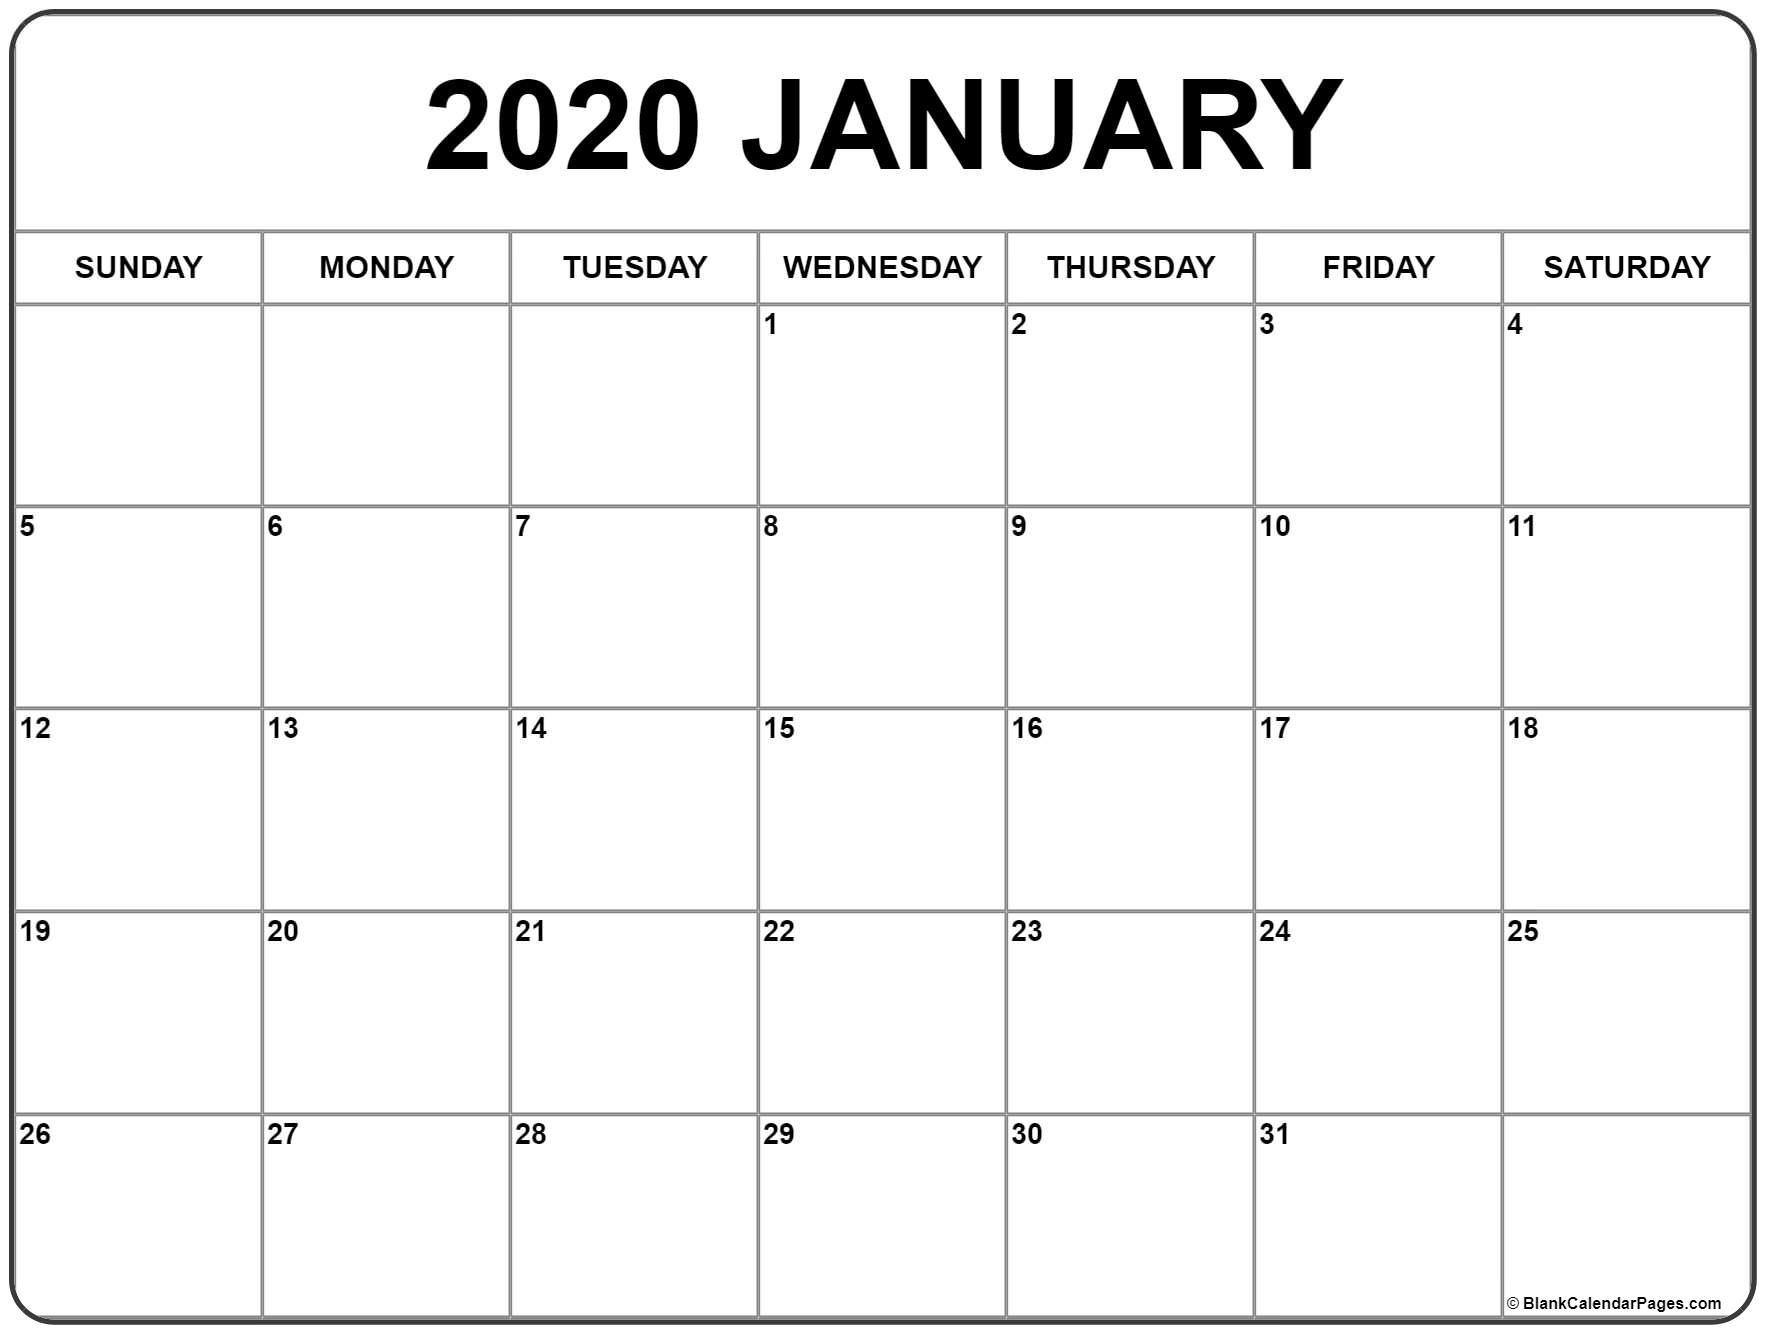 January 2020 Calendar | Free Printable Monthly Calendars-Printable Monthly Calendar 2020